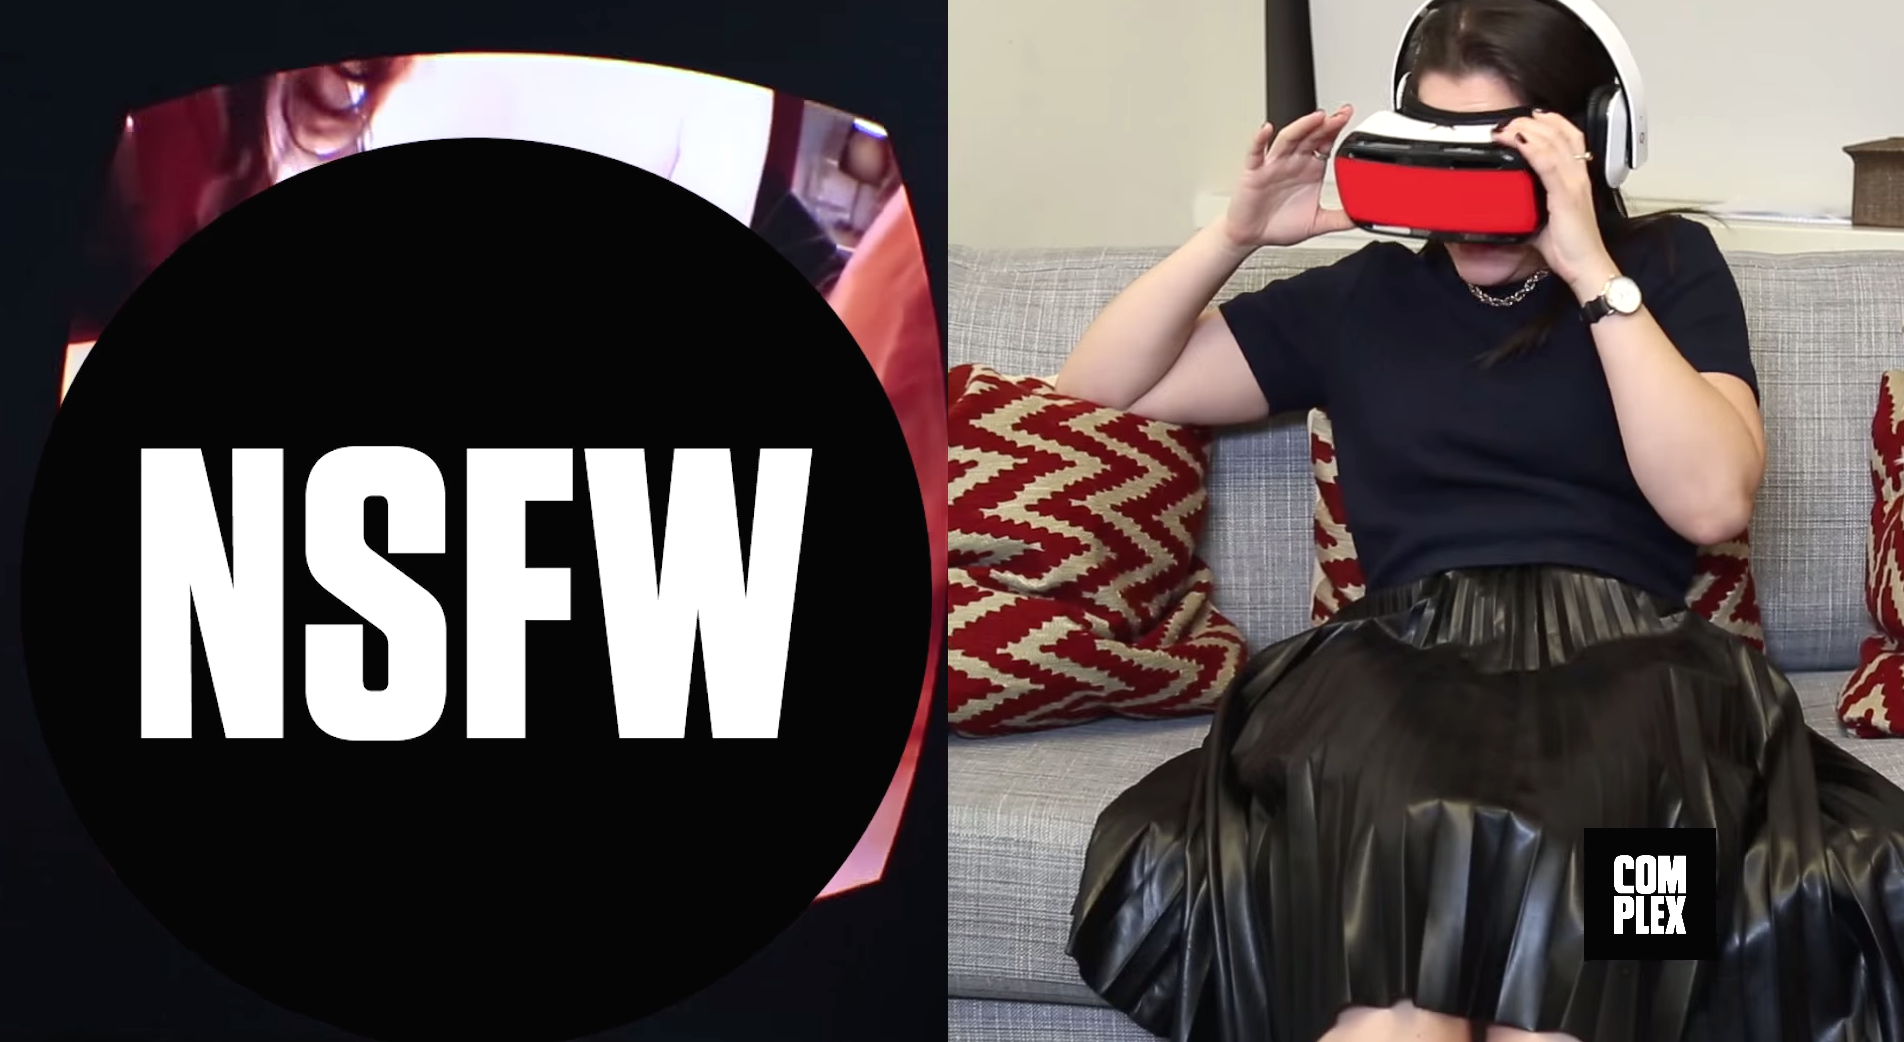 how to watch porn on samsung vr